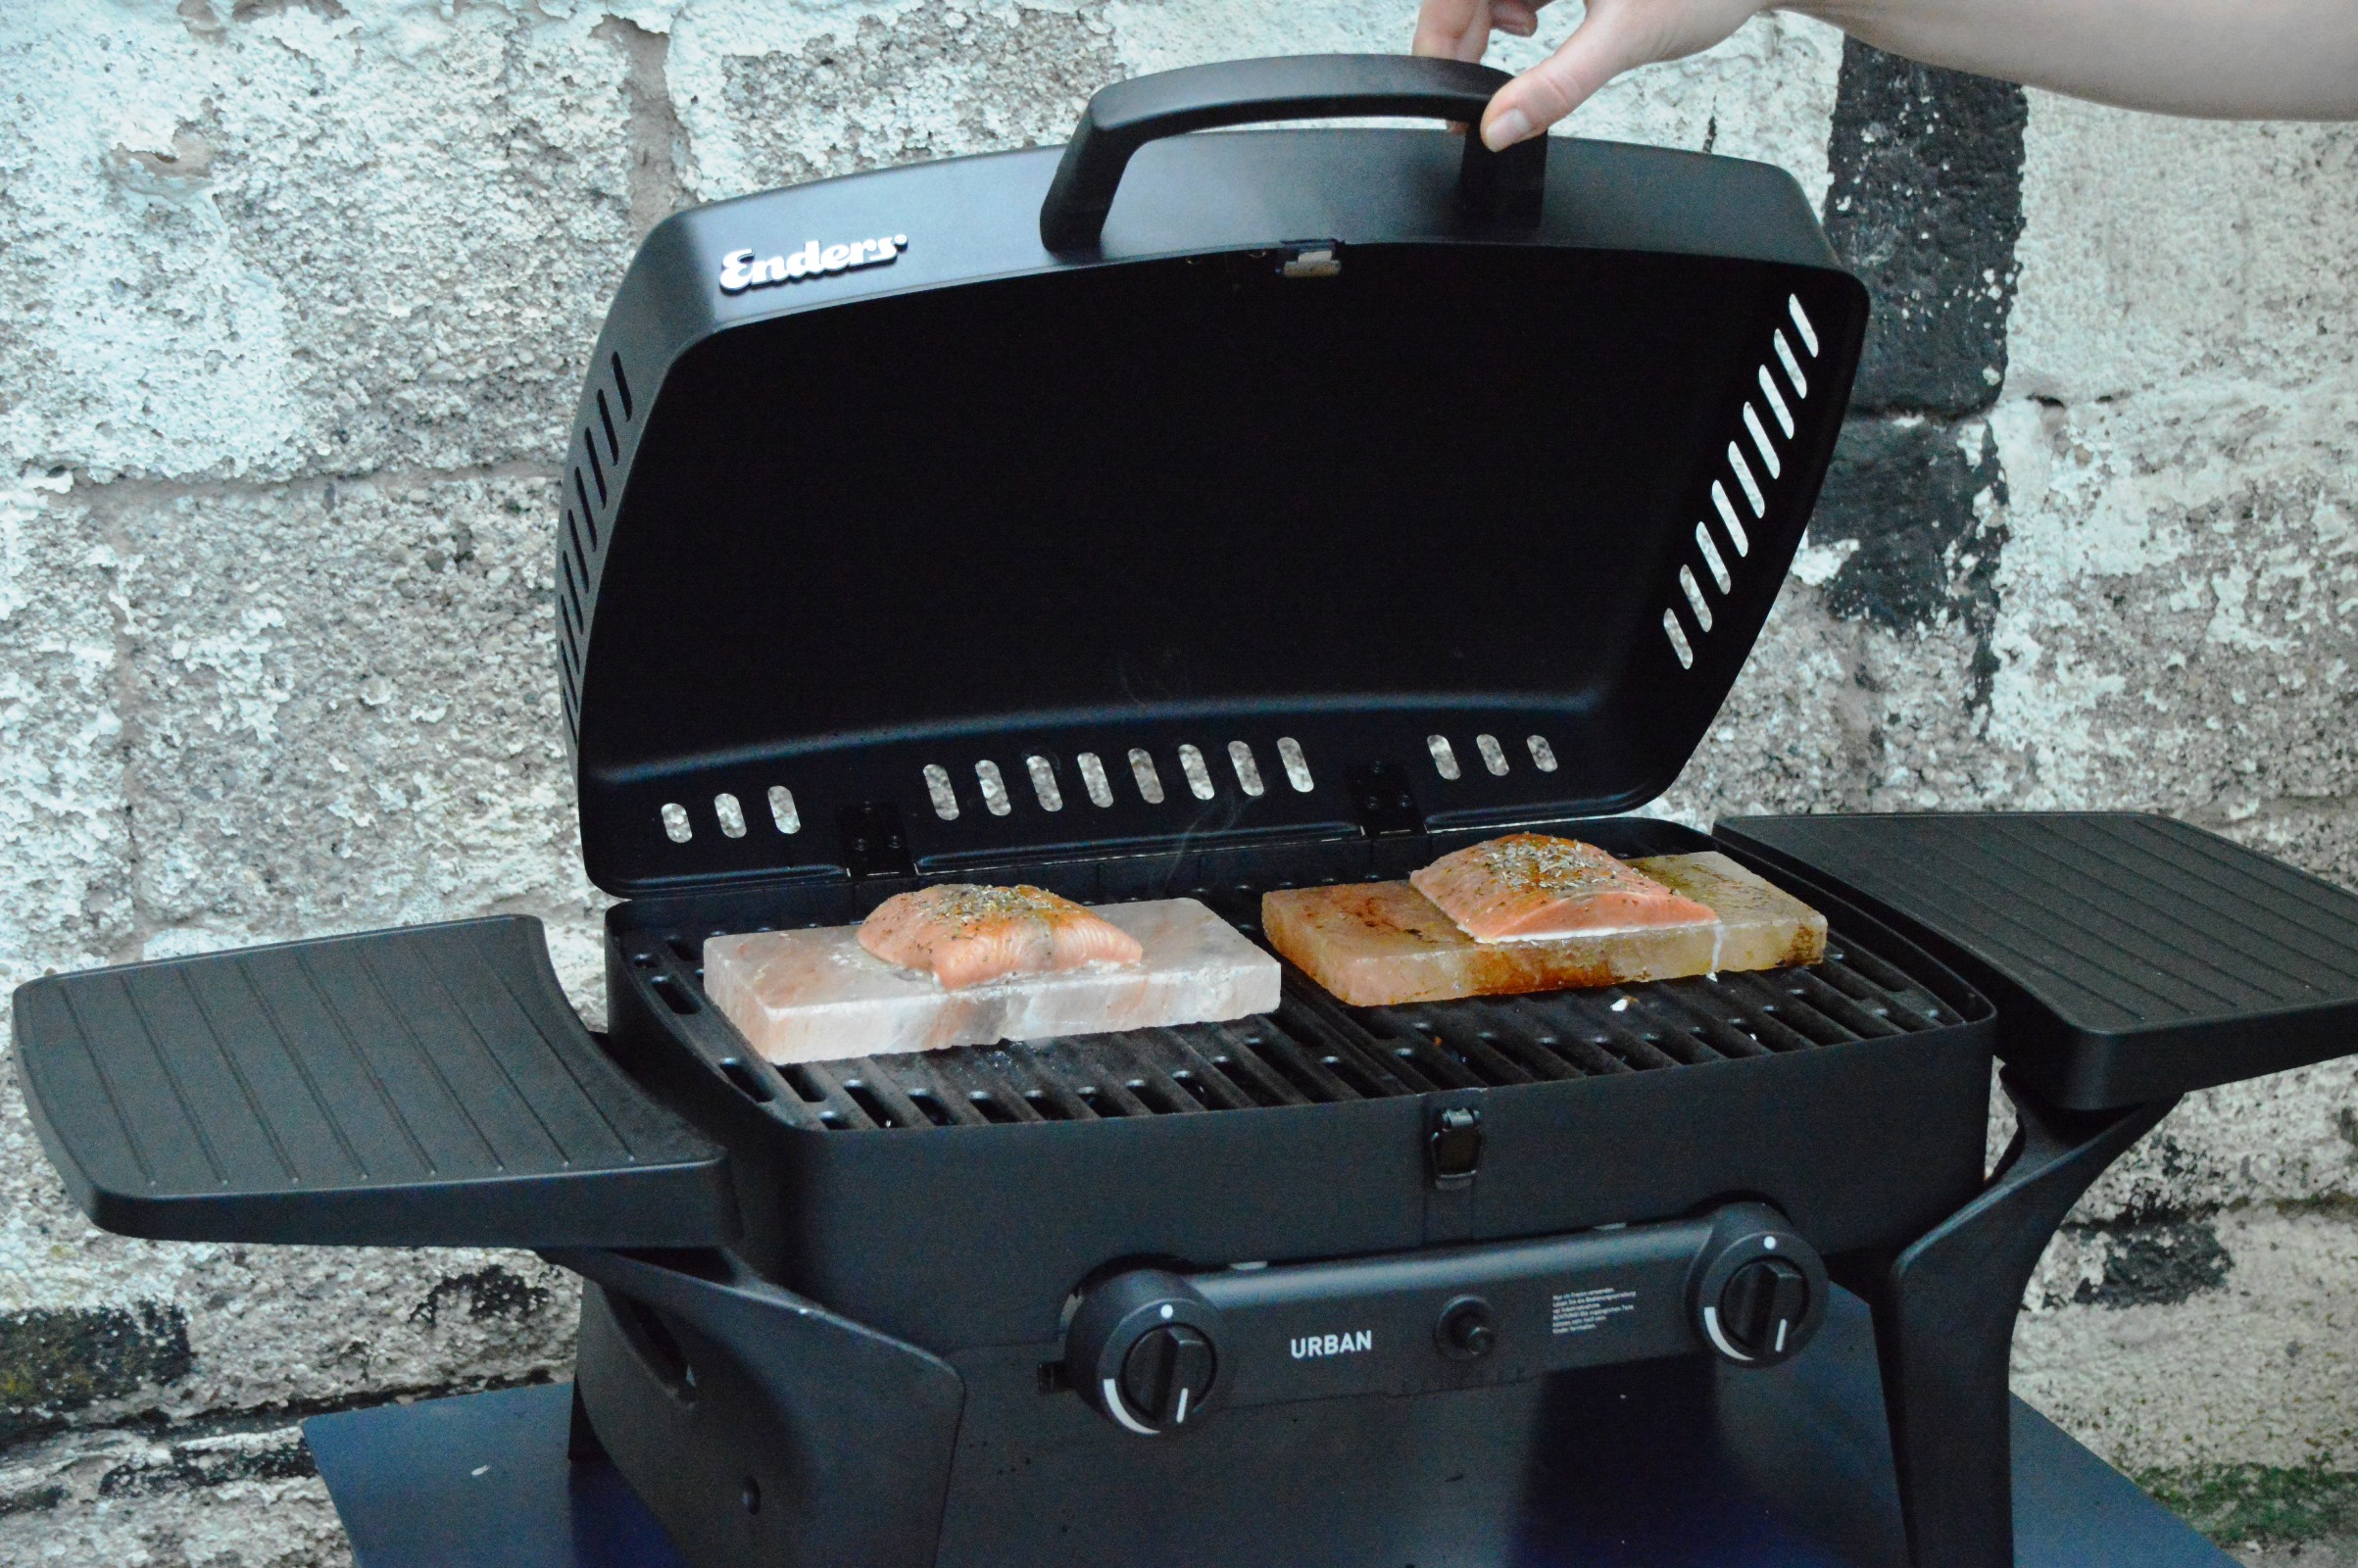 Enders Gasgrill Website : Angegrillt: enders urban im test bacon zum steak